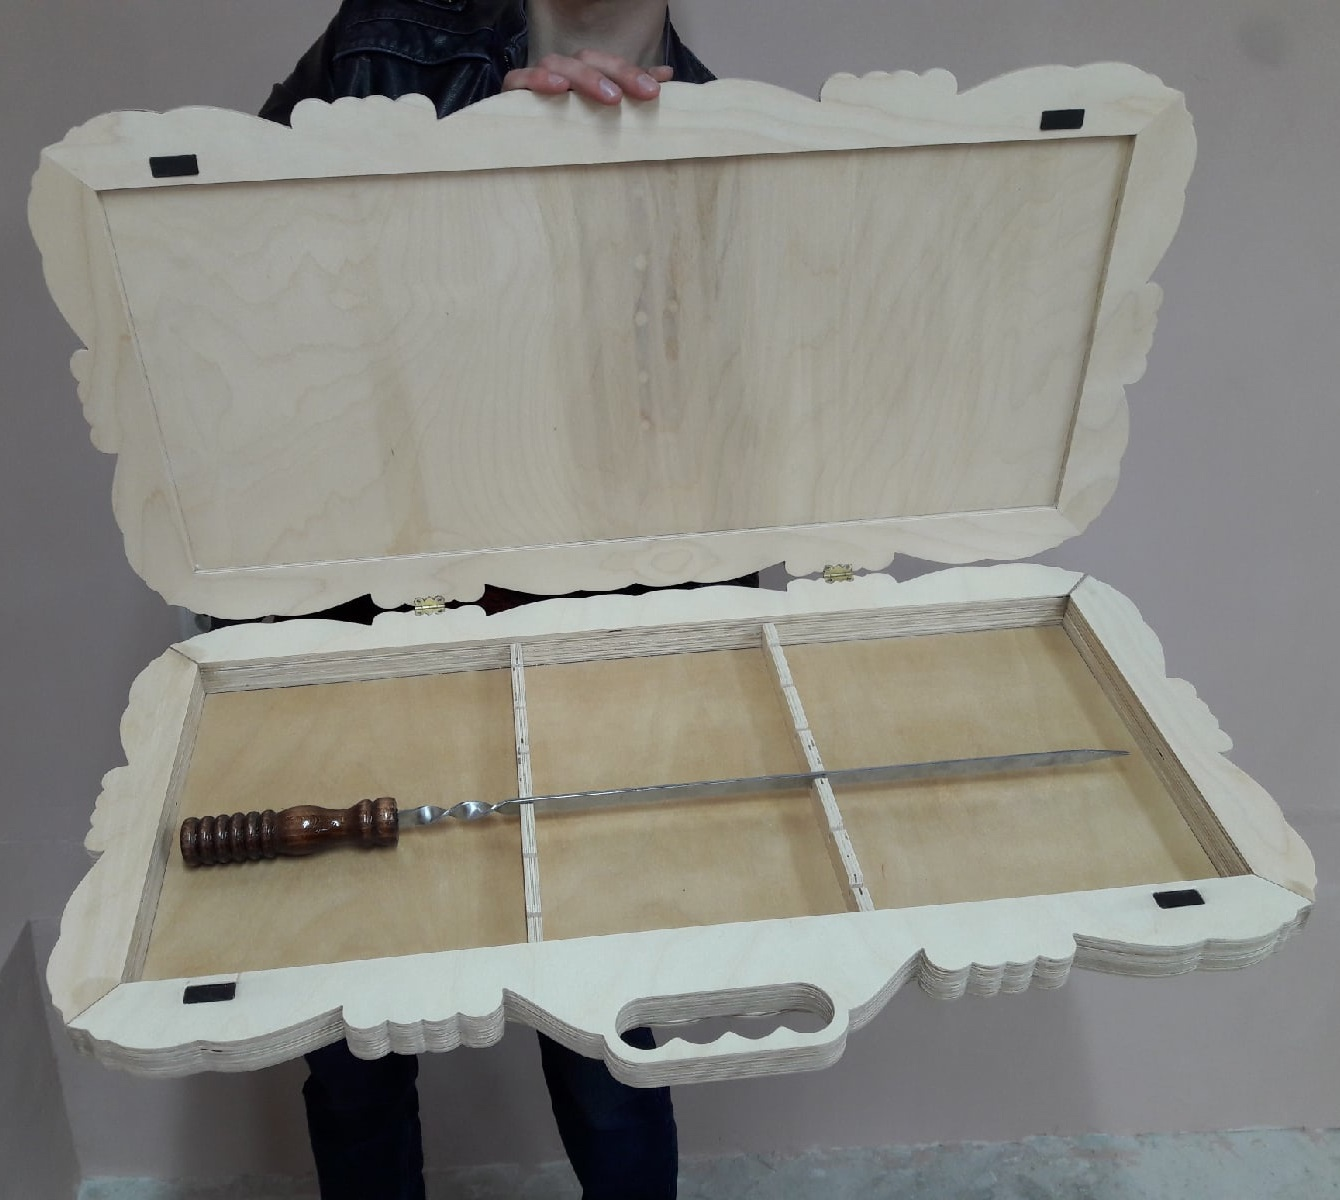 Laser Cut Barbecue Skewers Decorative Wooden Storage Box DXF File